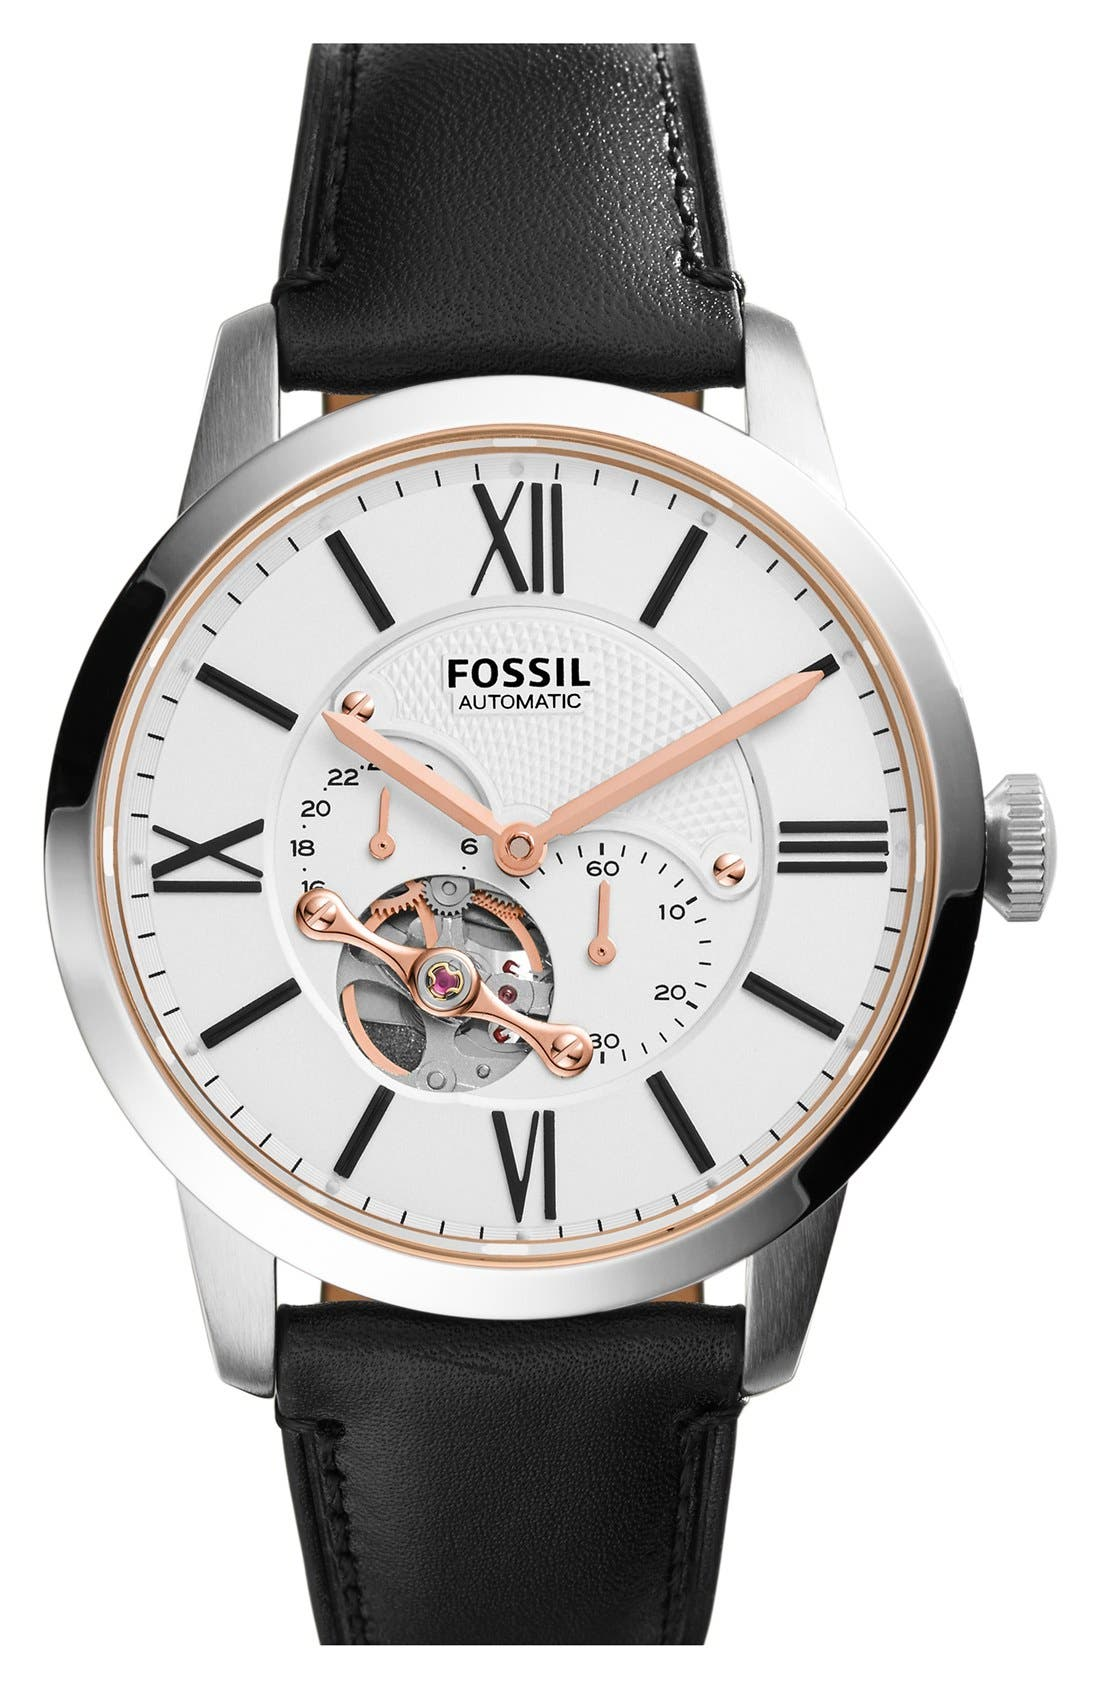 FOSSIL 'Townsman' Automatic Leather Strap Watch, 44mm, Main, color, 001